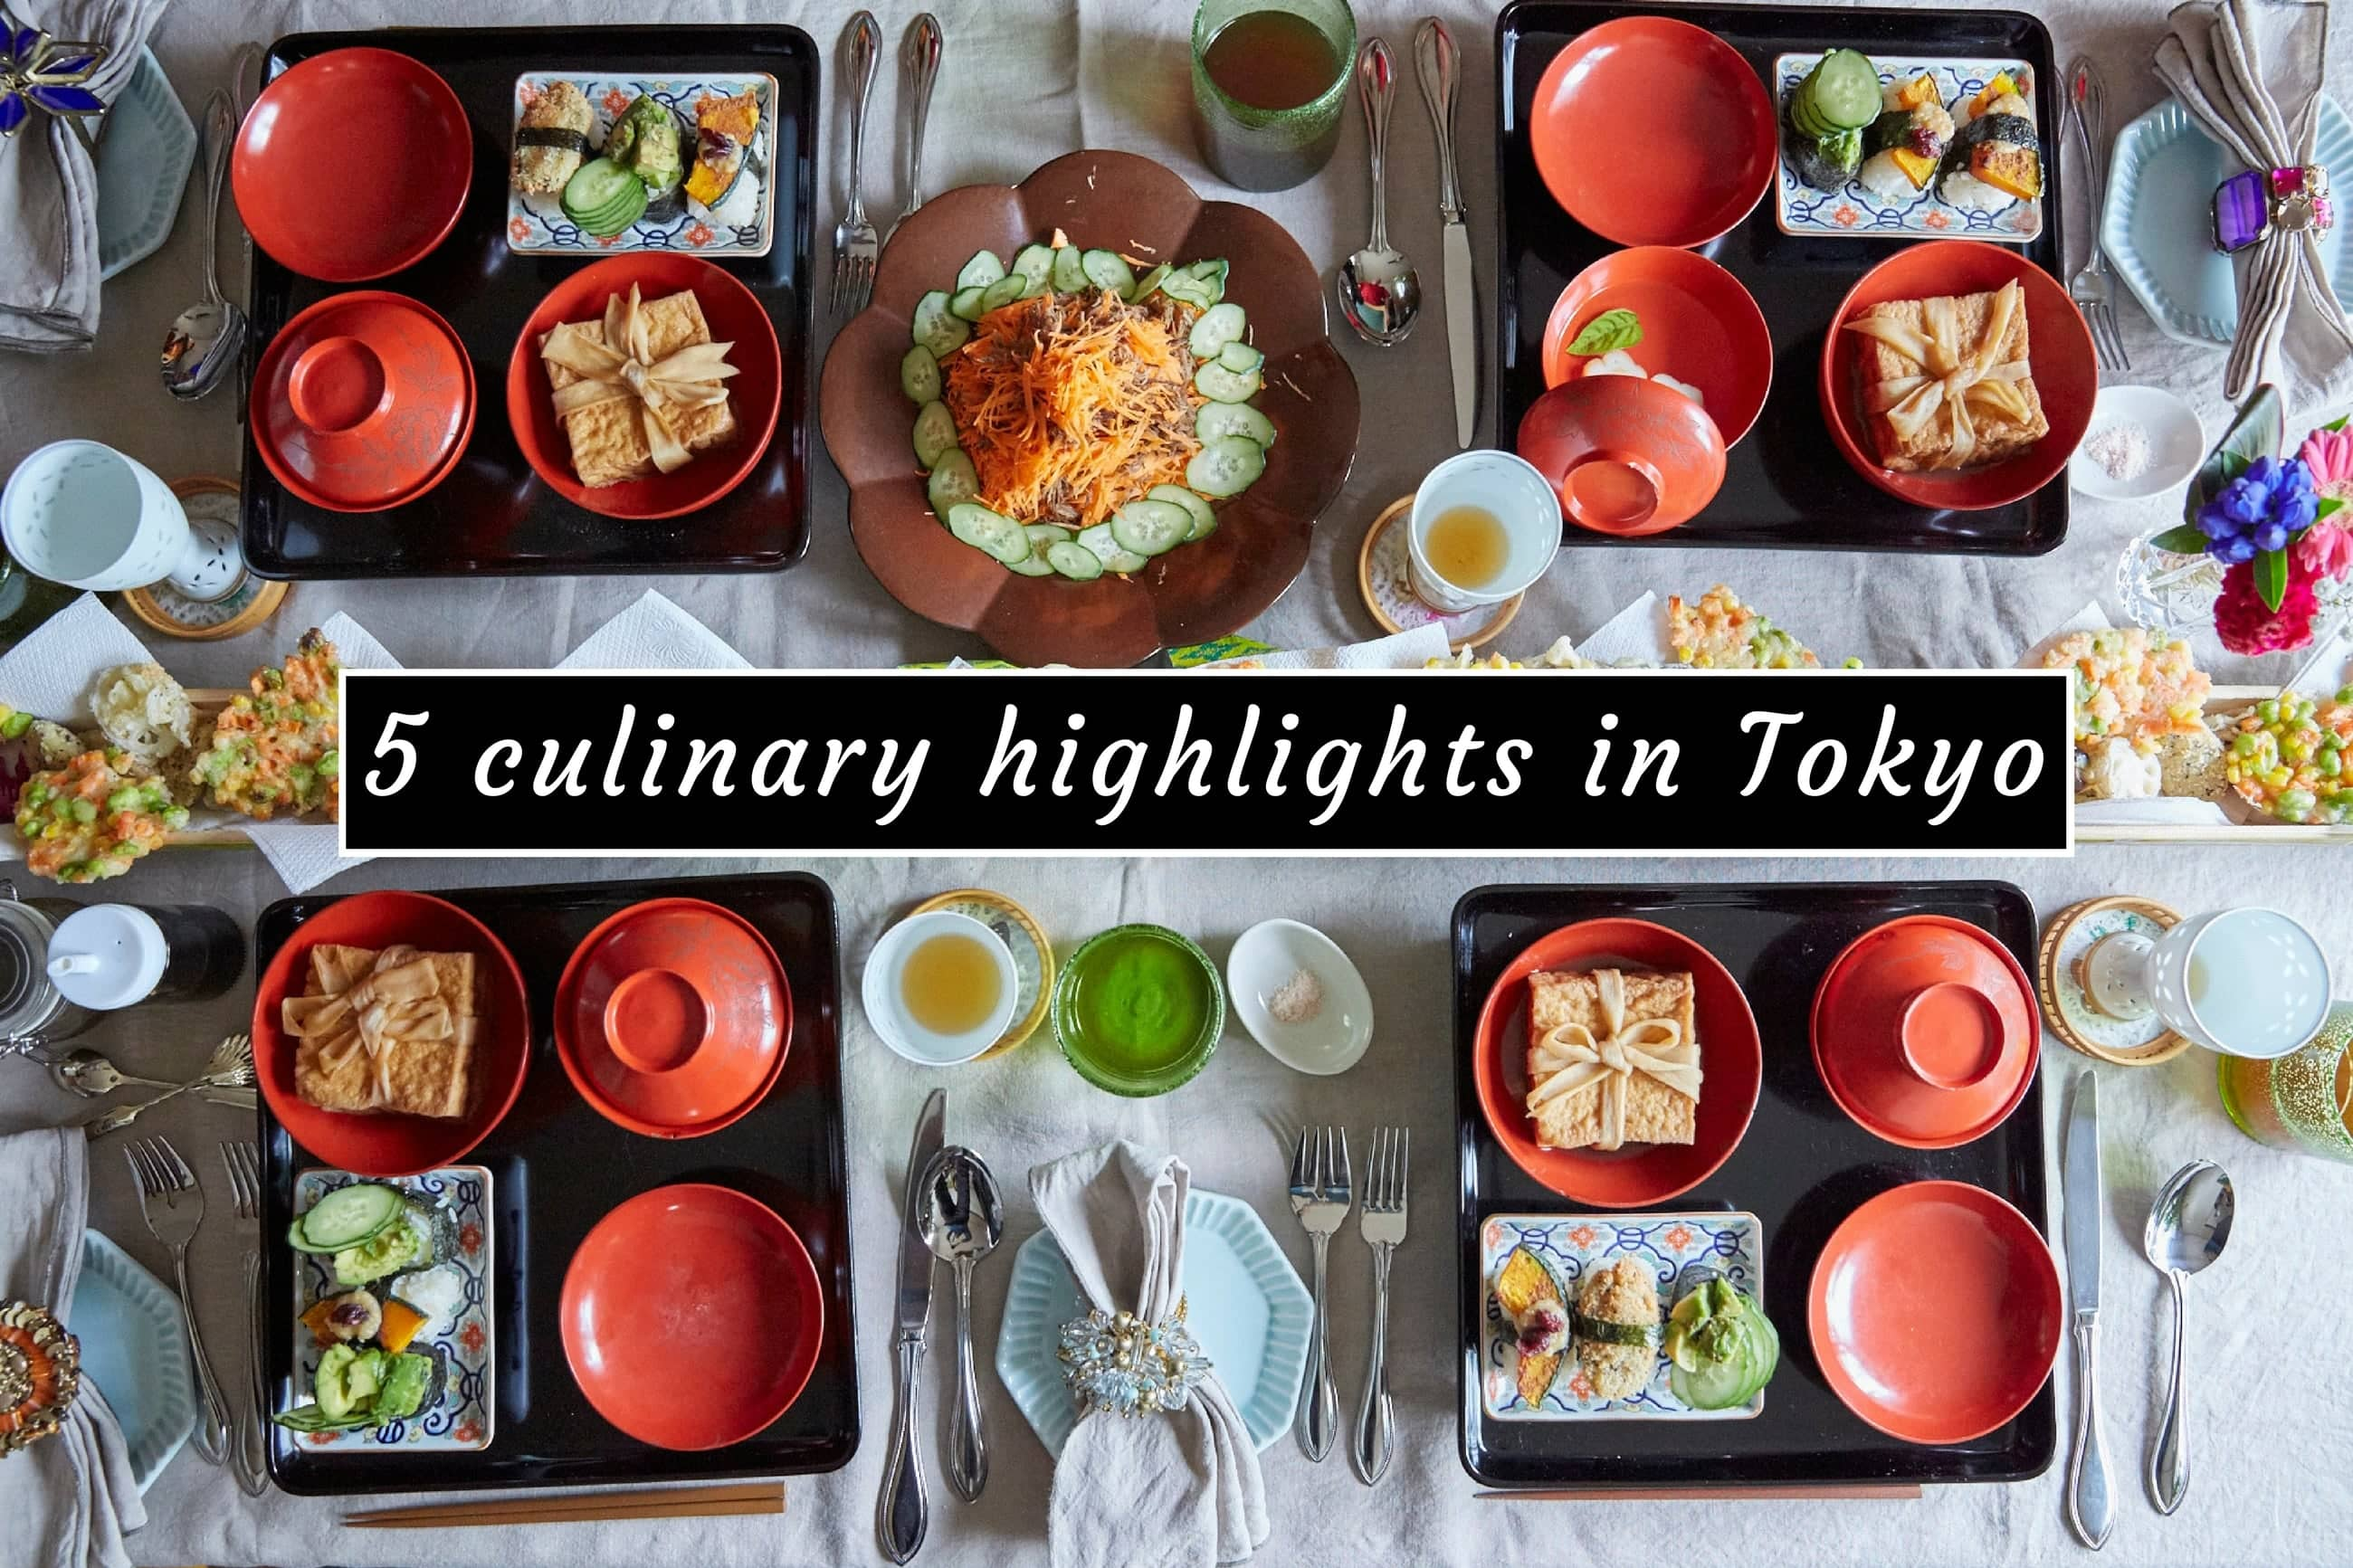 5 culinary highlights in Tokyo